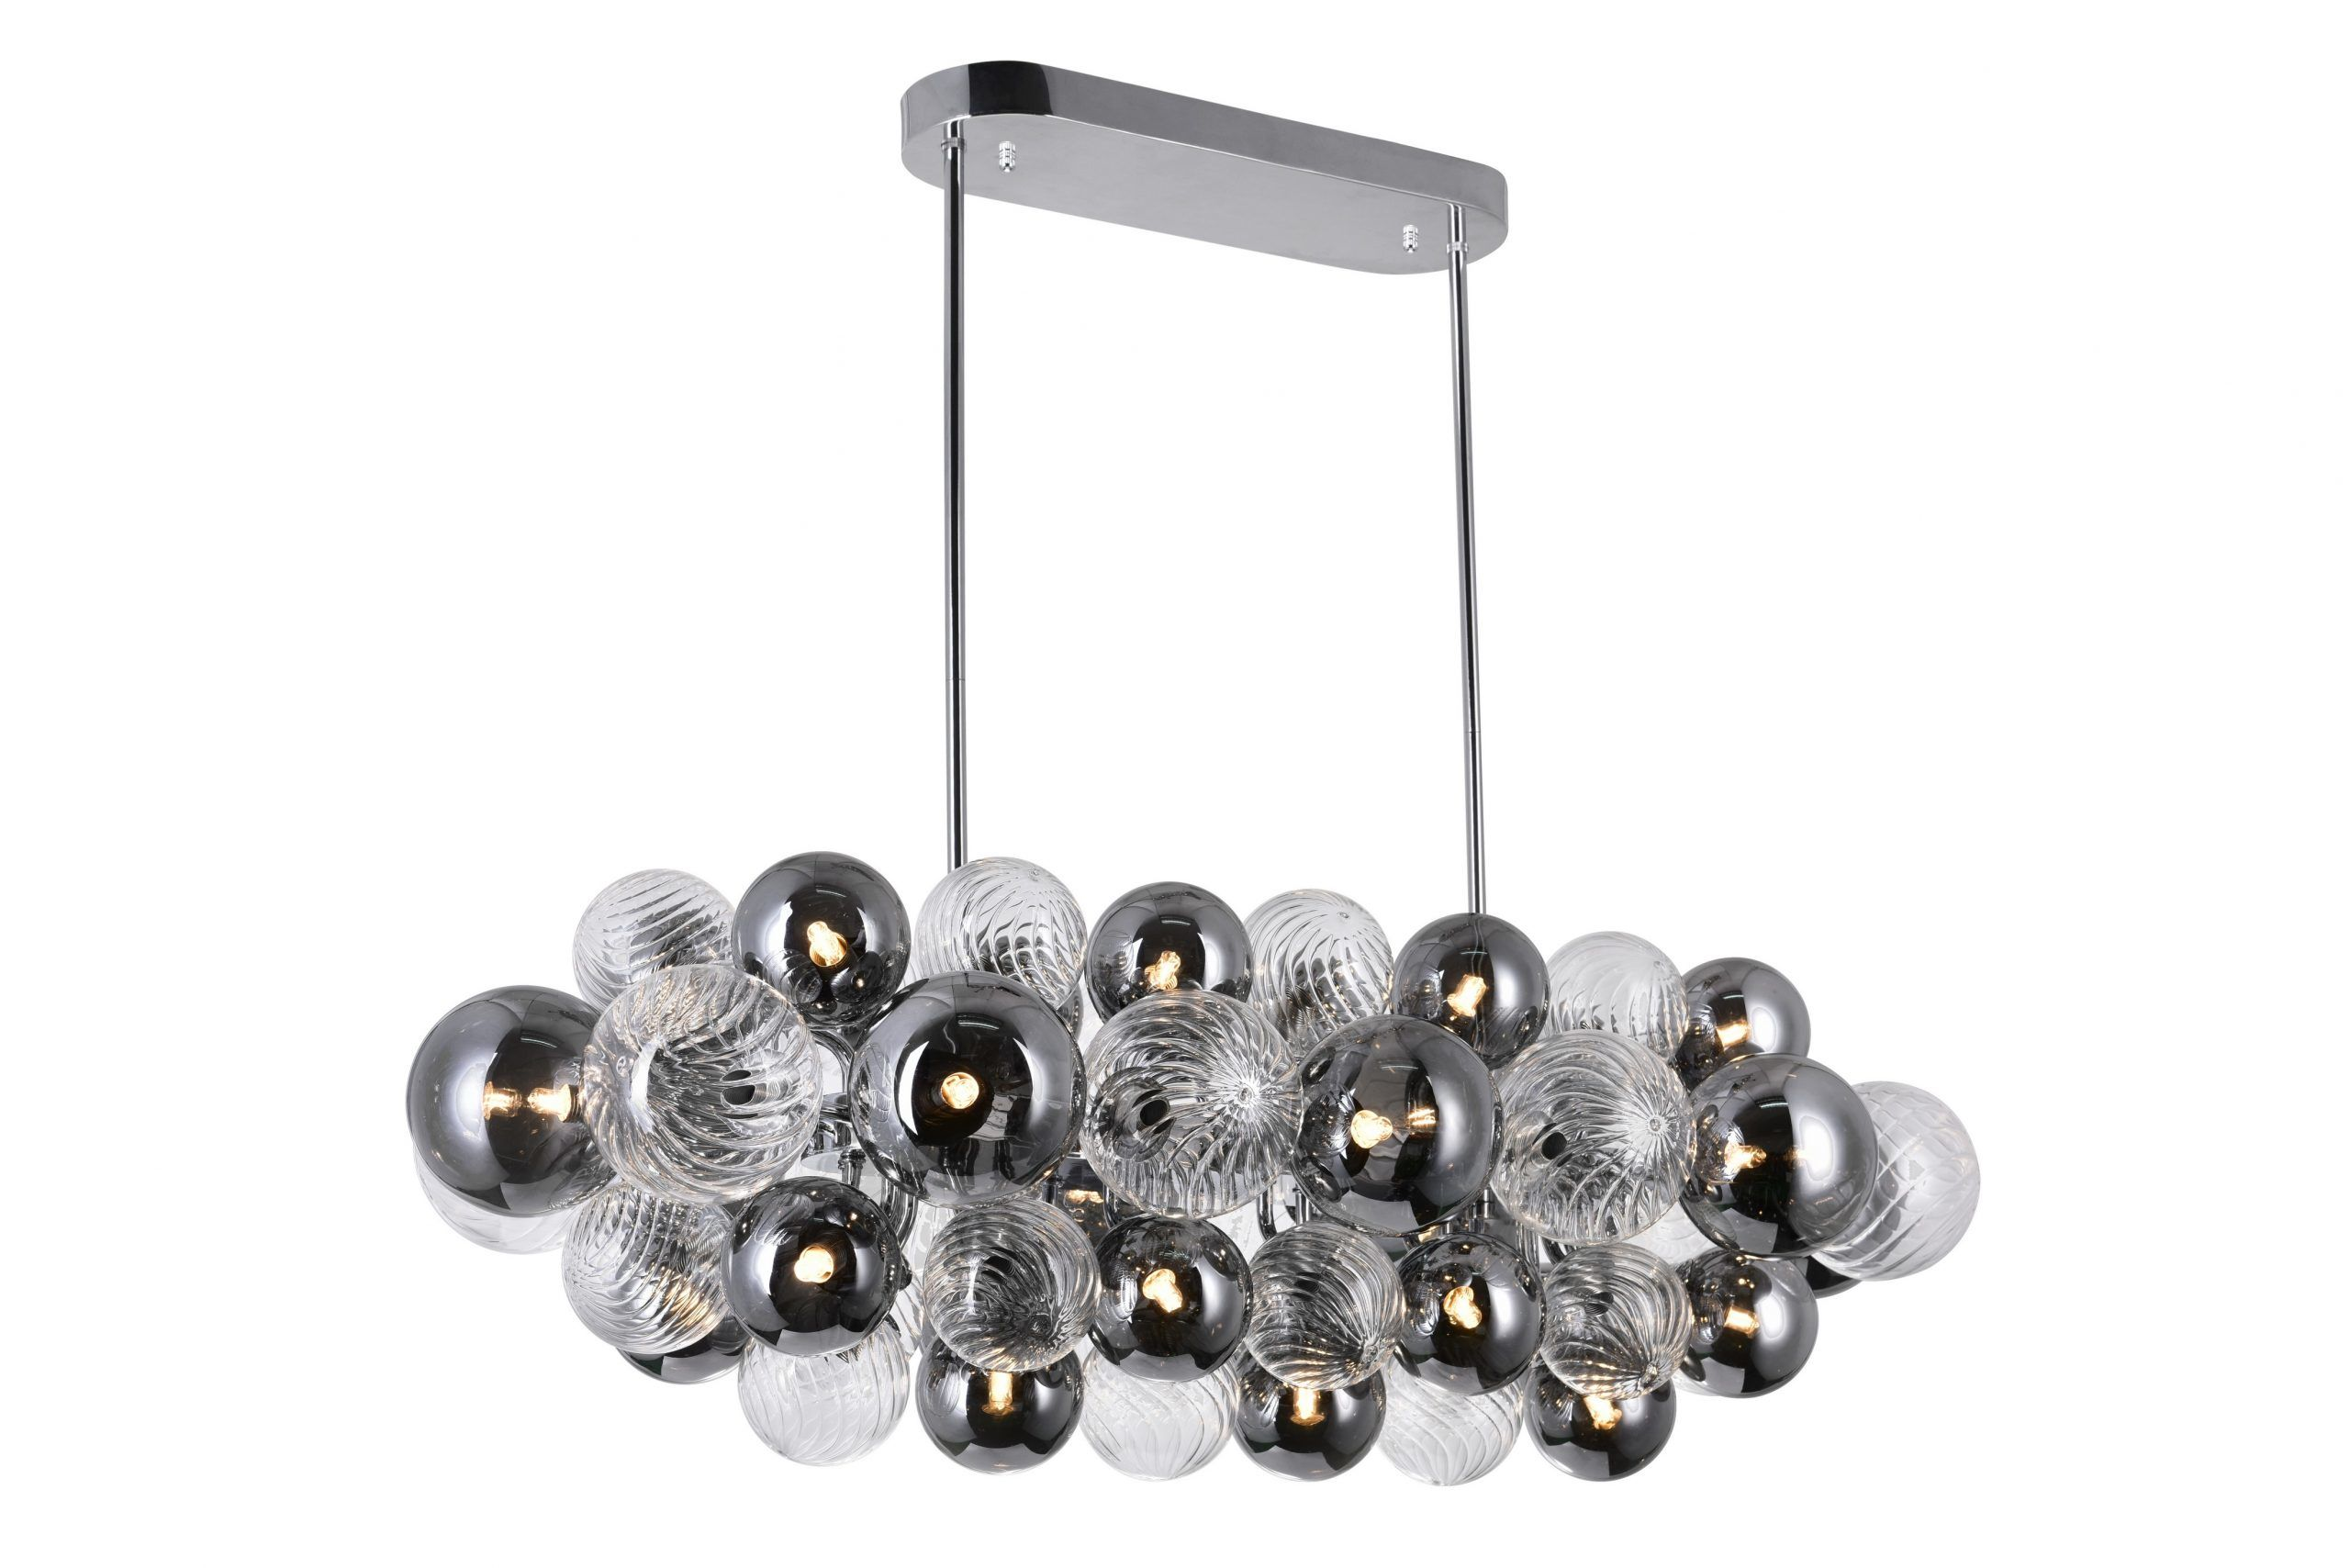 27 Light Island/Pool Table Chandelier with Chrome Finish